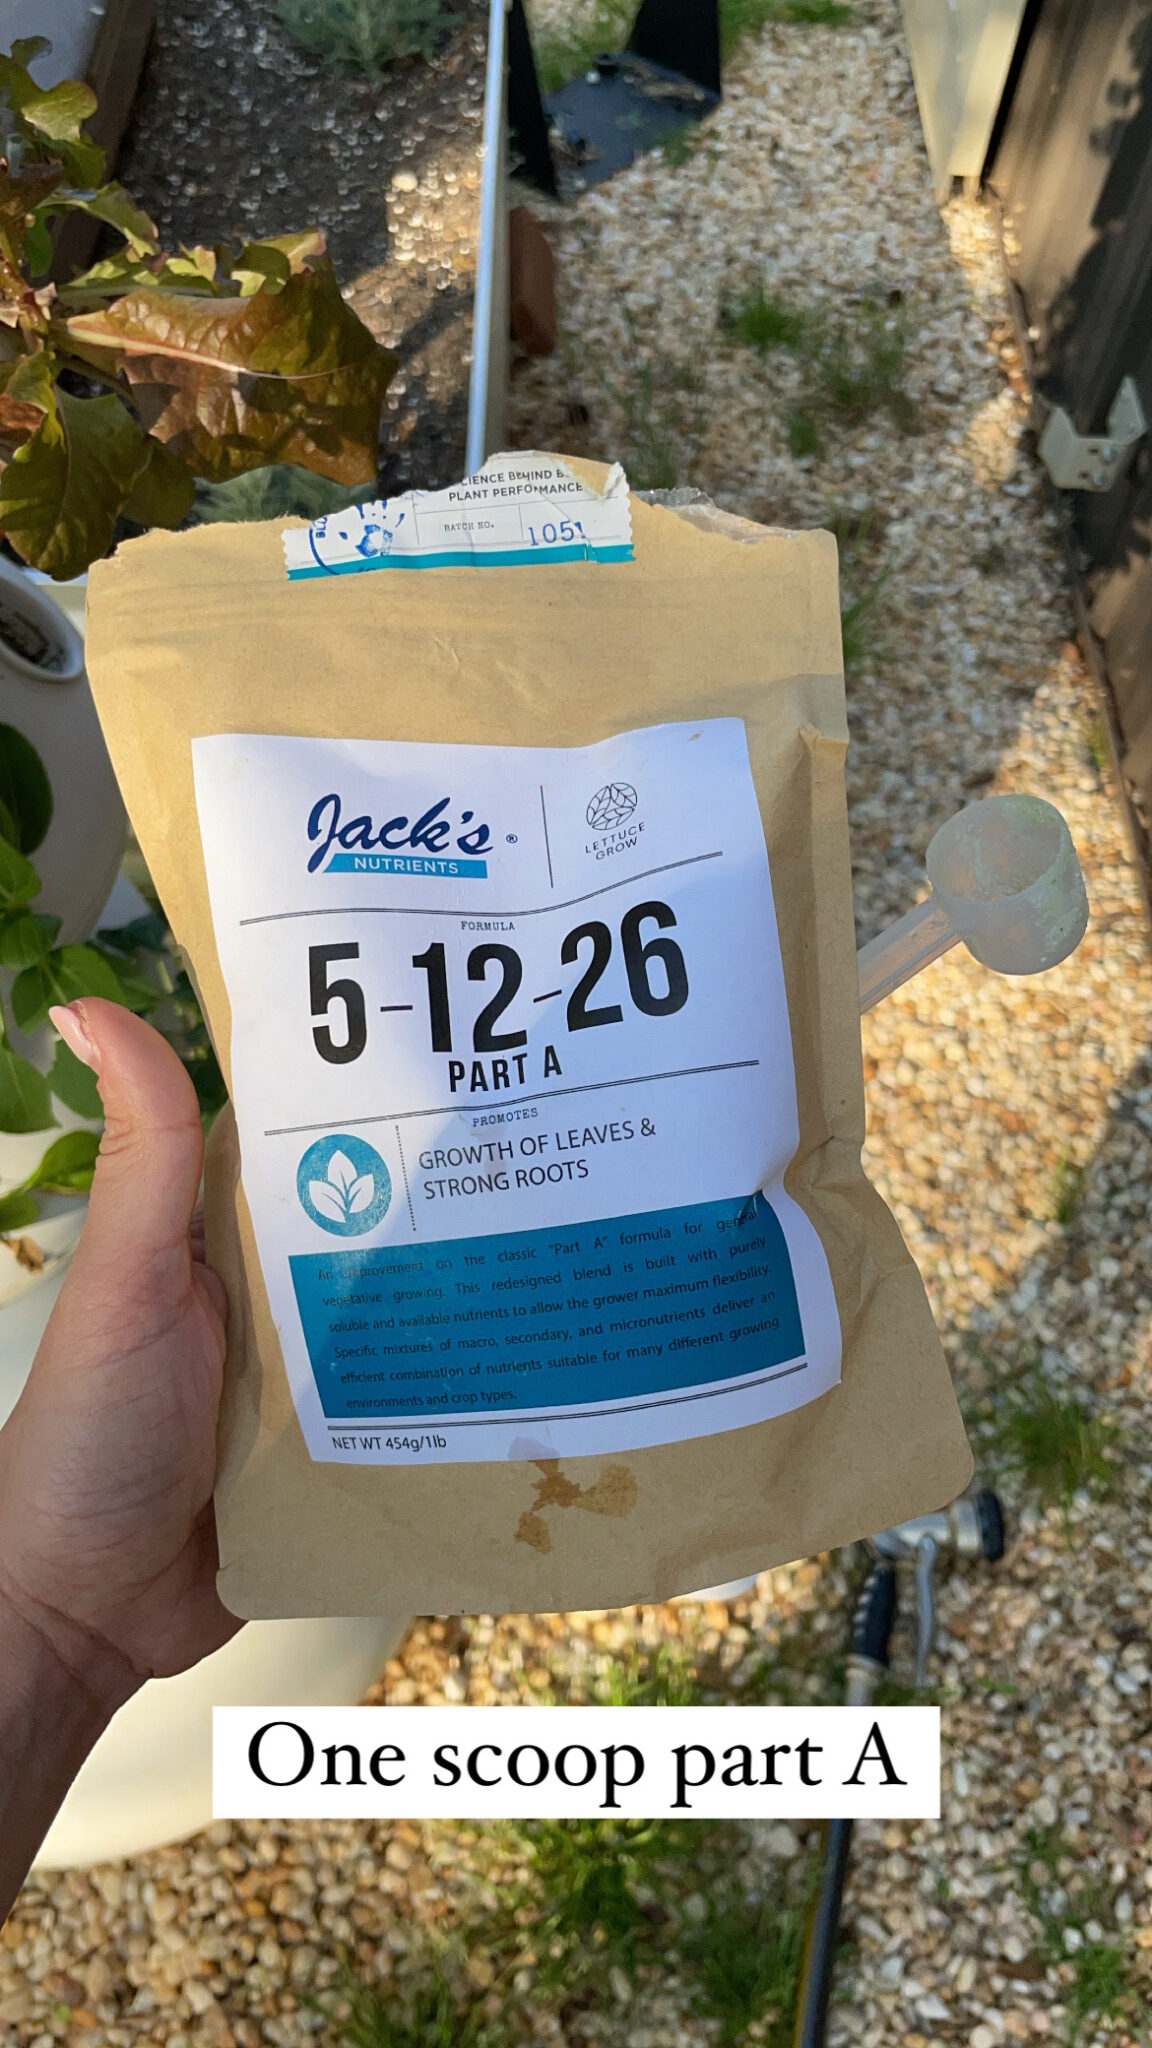 easy hydroponic garden, featured by top Atlanta lifestyle blogger, Moderately High Maintenance | Hydroponic Garden by popular Atlanta lifestyle blog, Moderately High Maintenance: image of a woman holding a bag of Jack's nutrients.